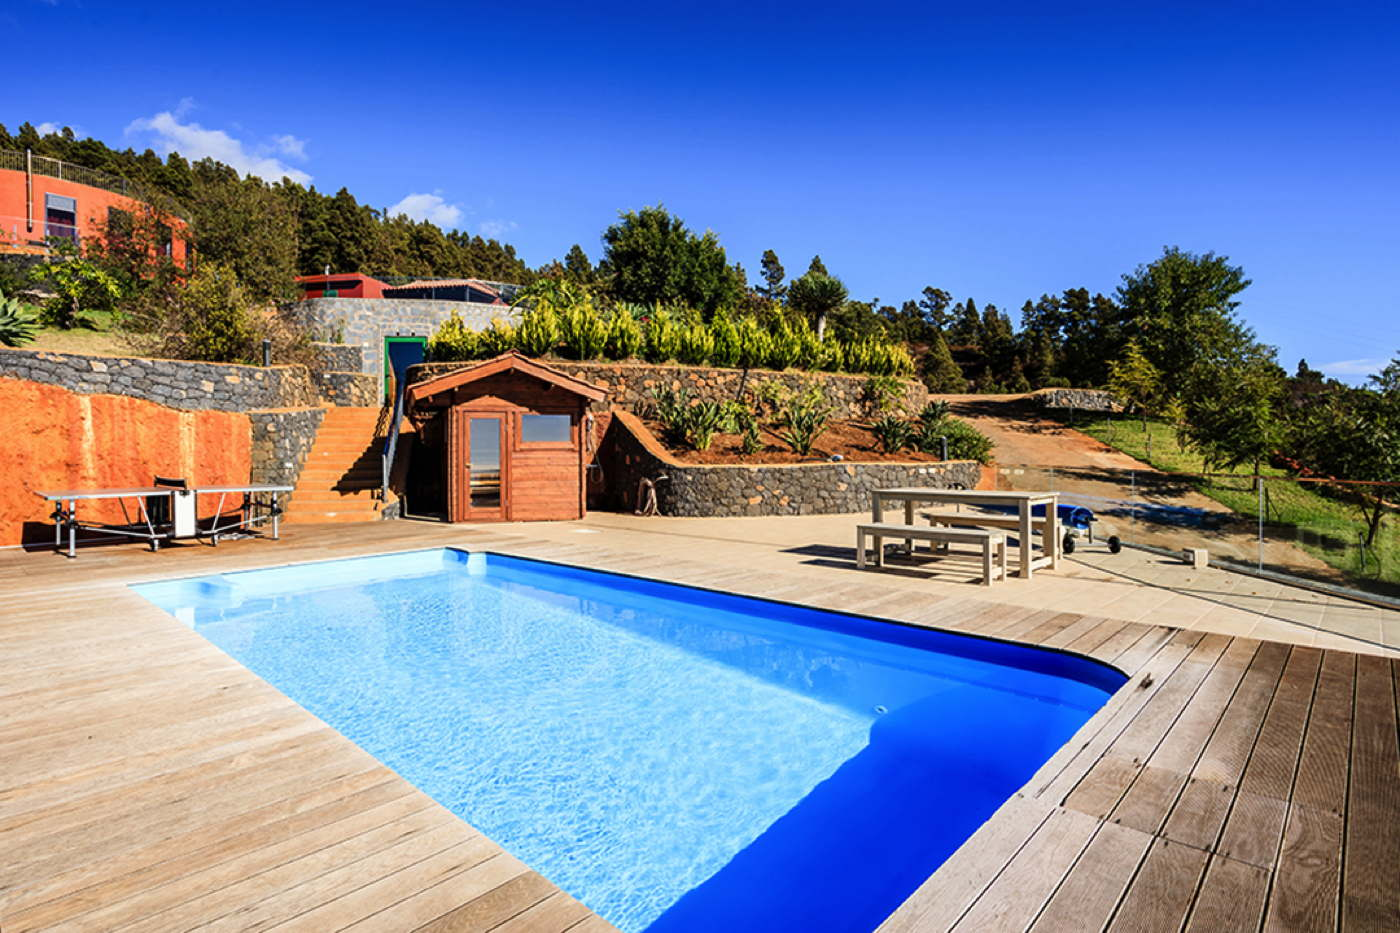 Rental villa with heated pool in la palma spain domizile for Villas corona